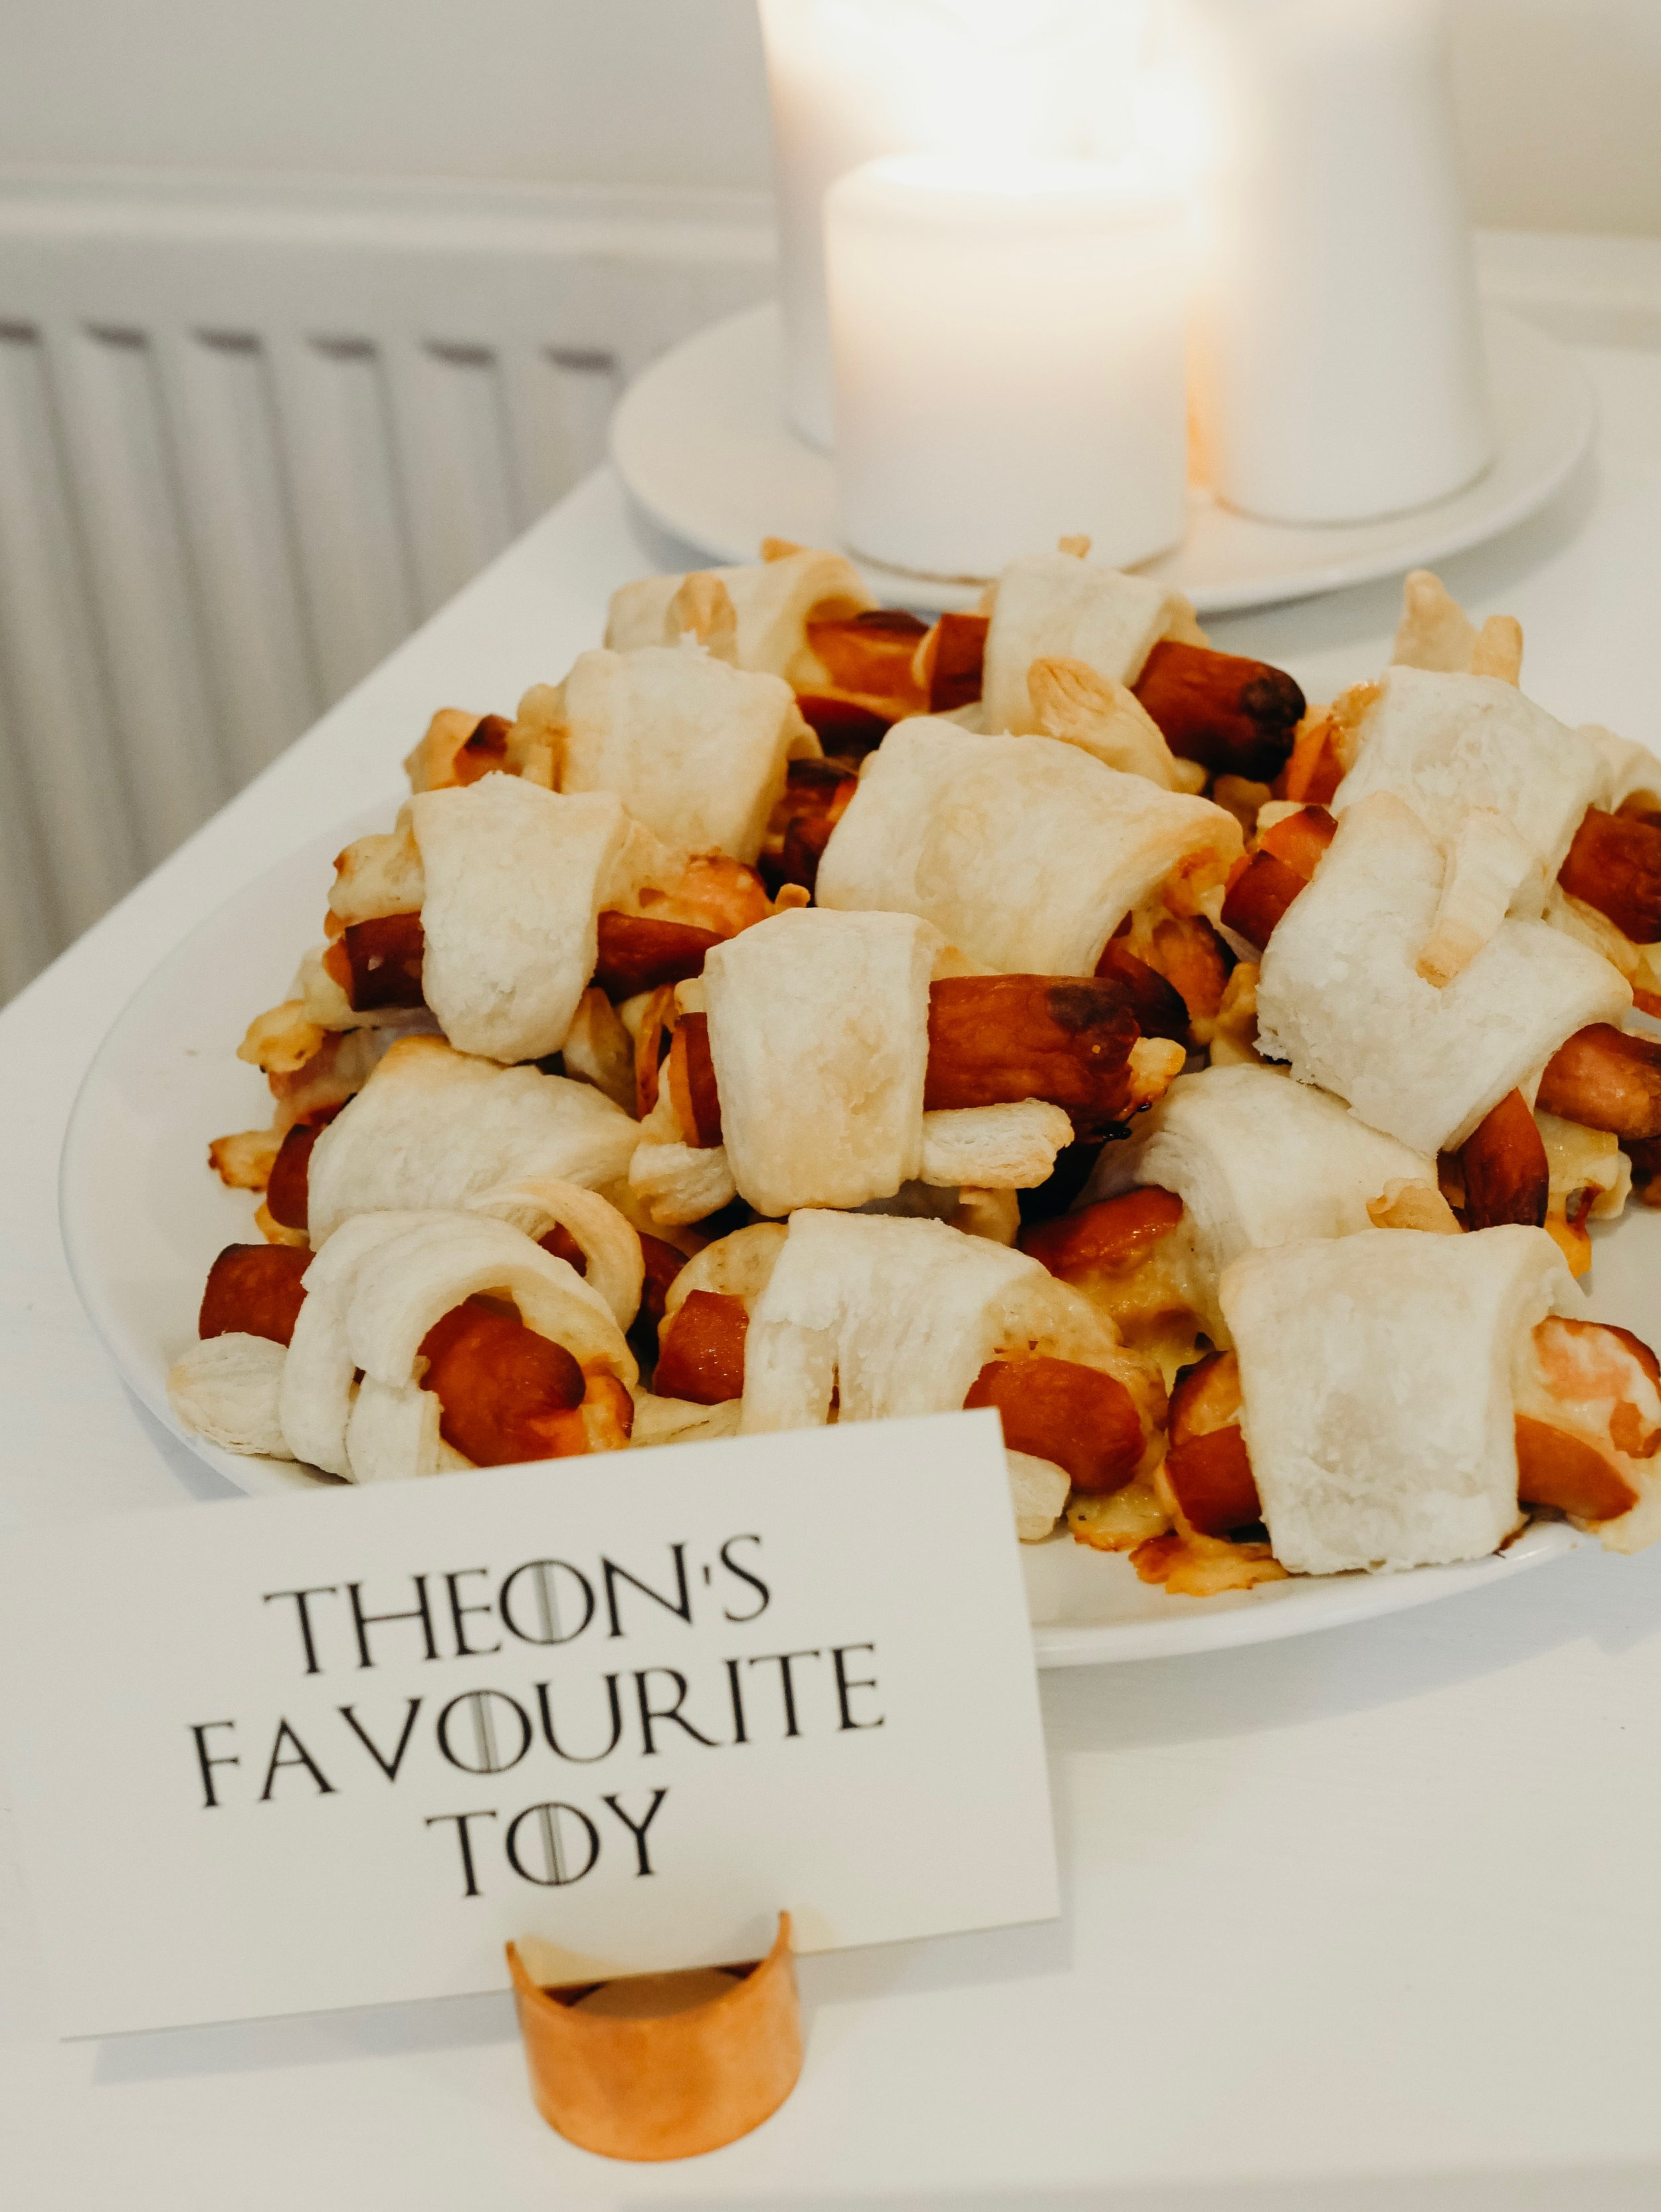 Game of Thrones Party Food - Theon's Favourite Toy